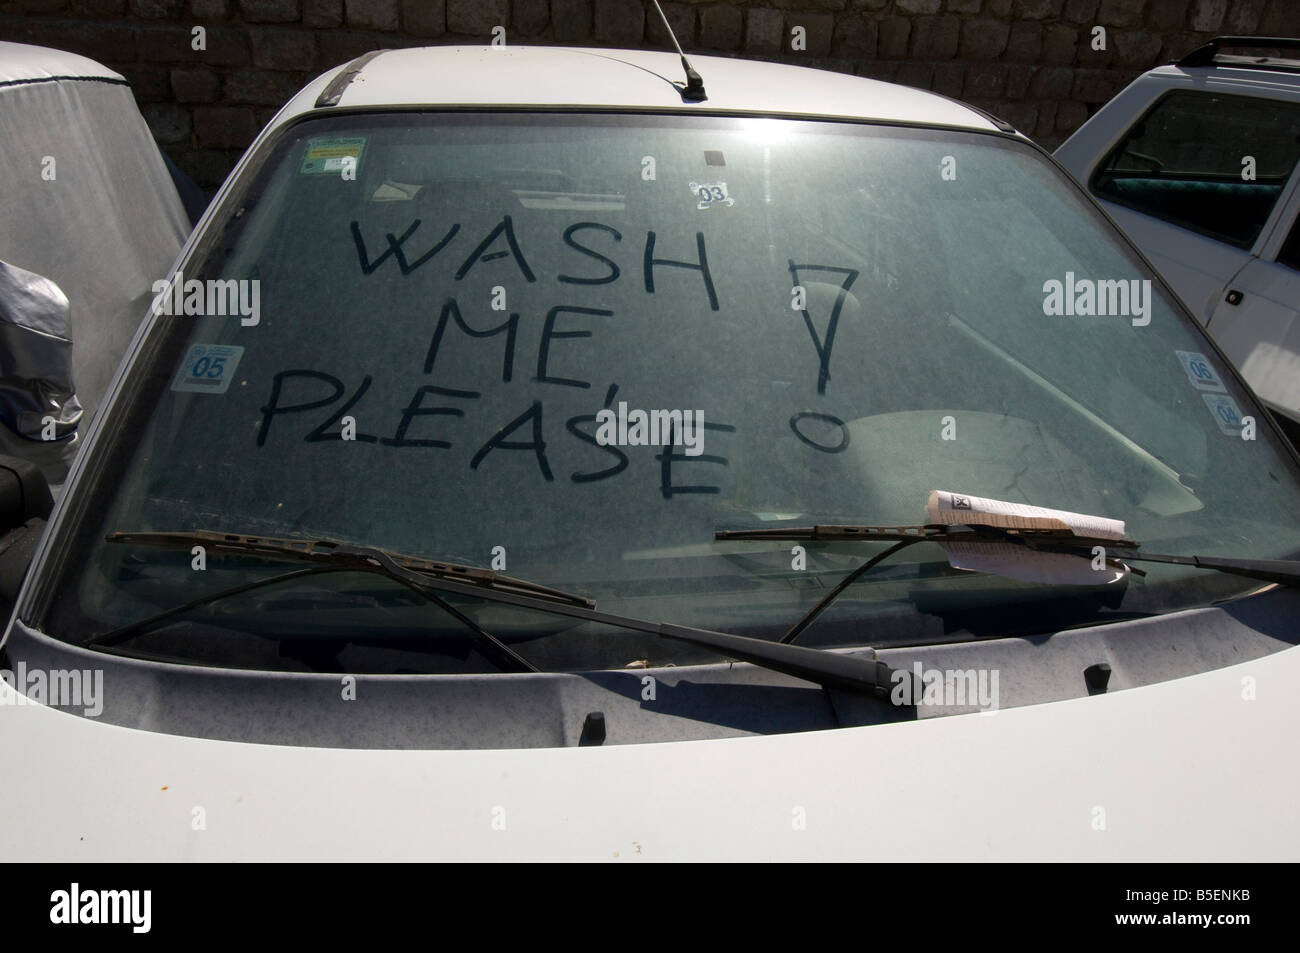 A Wash Me Please Inscription Plea Written On The Filthy